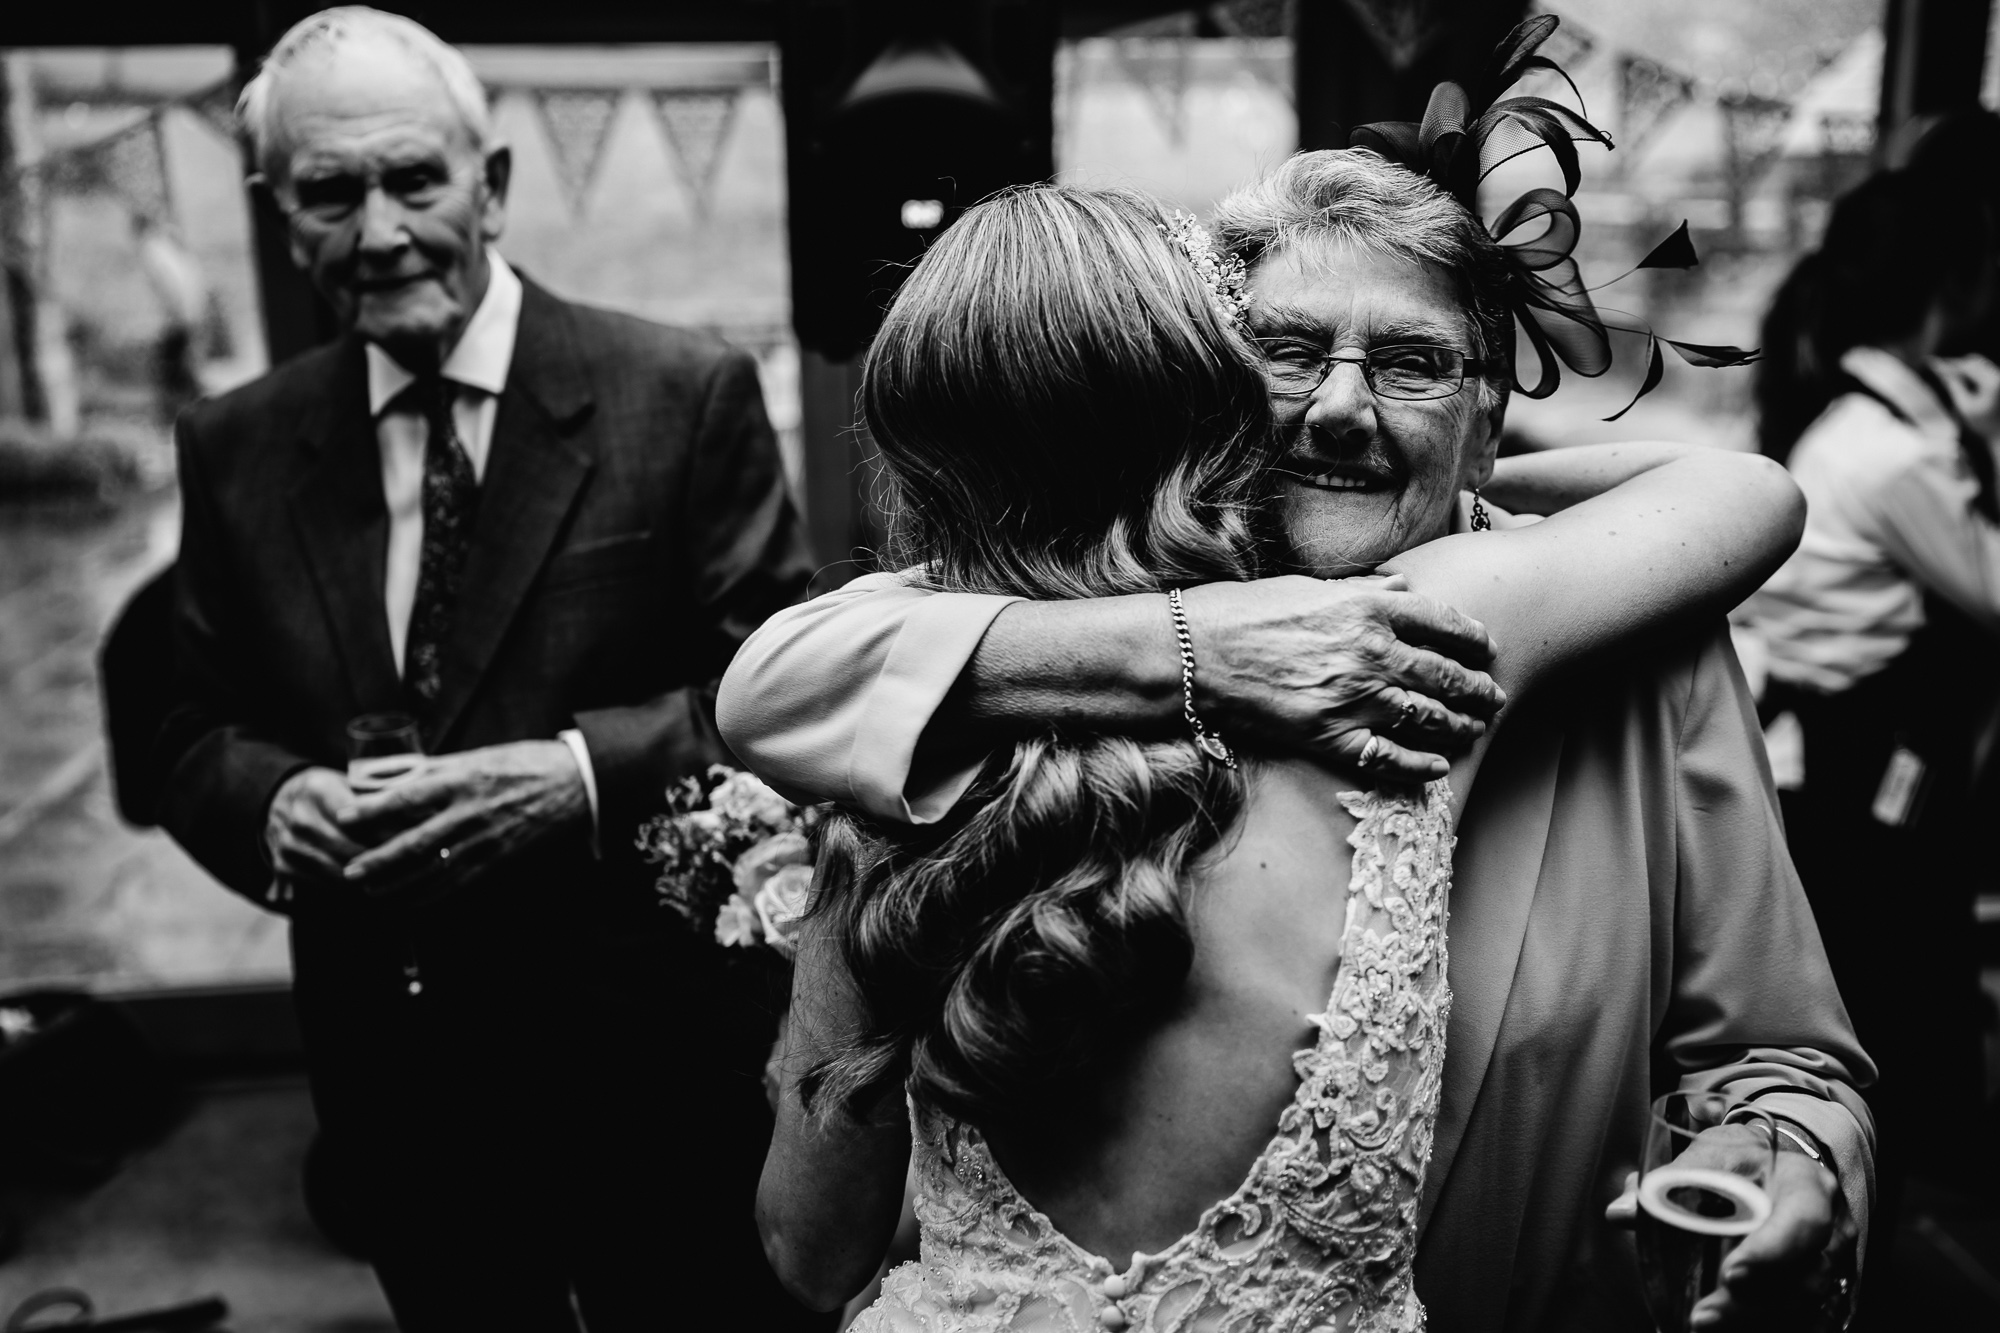 Tower Hill BArn Wedding Photographer based in north west england (26 of 35).jpg